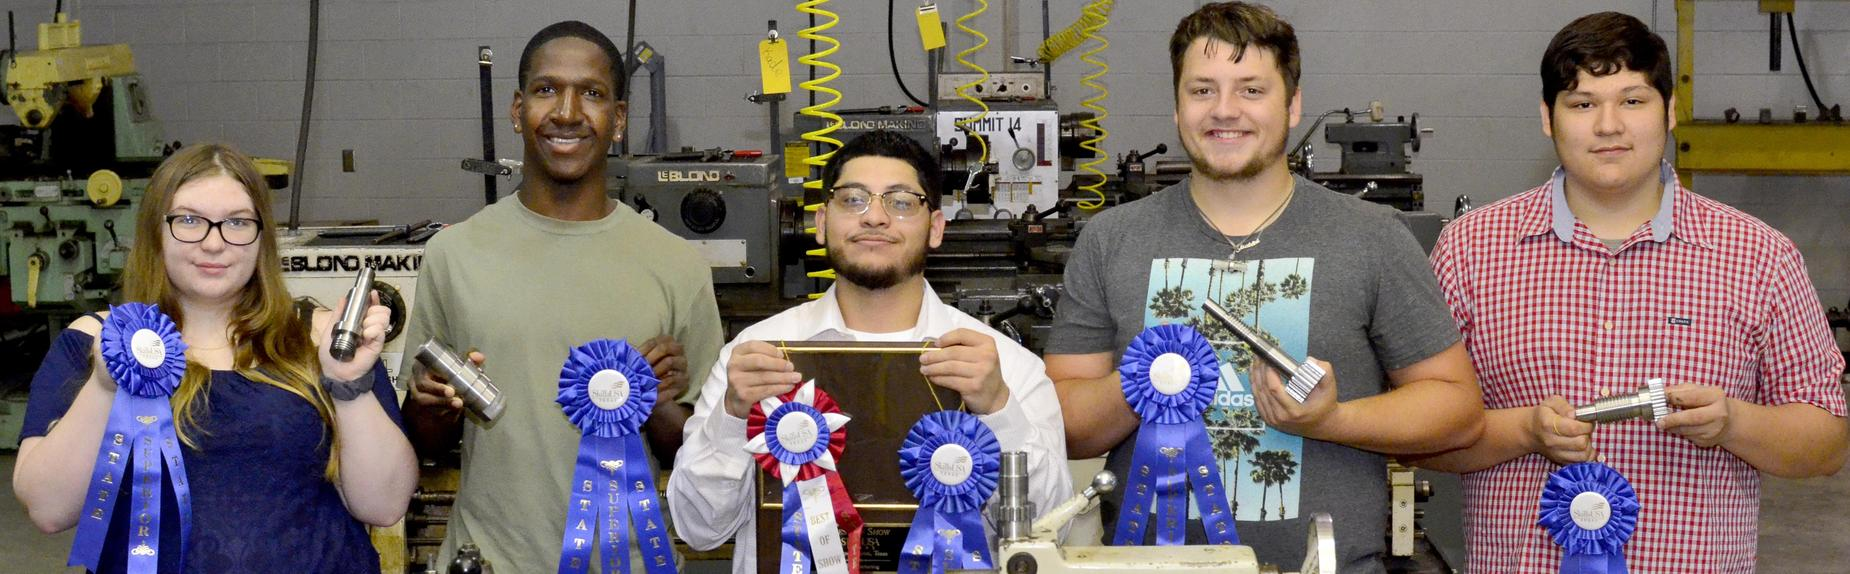 Career Center Precision Machine students win blue ribbons and BEST of SHOW at STATE Meet!